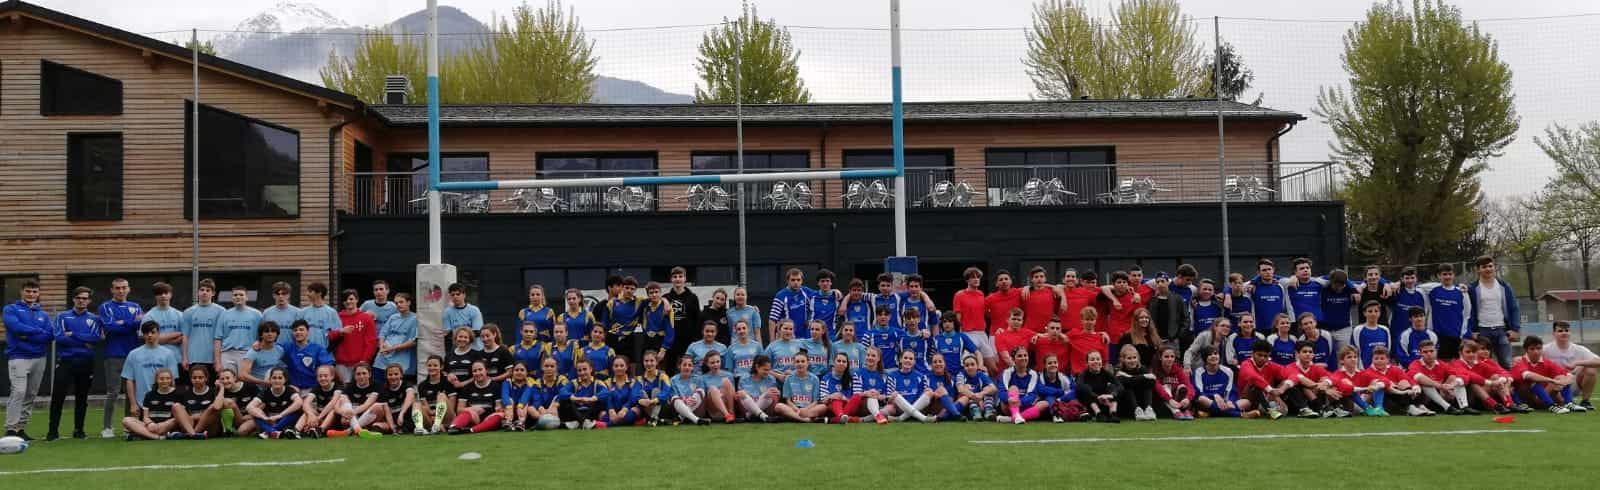 Rugby, le categorie allieve e allievi-2-2